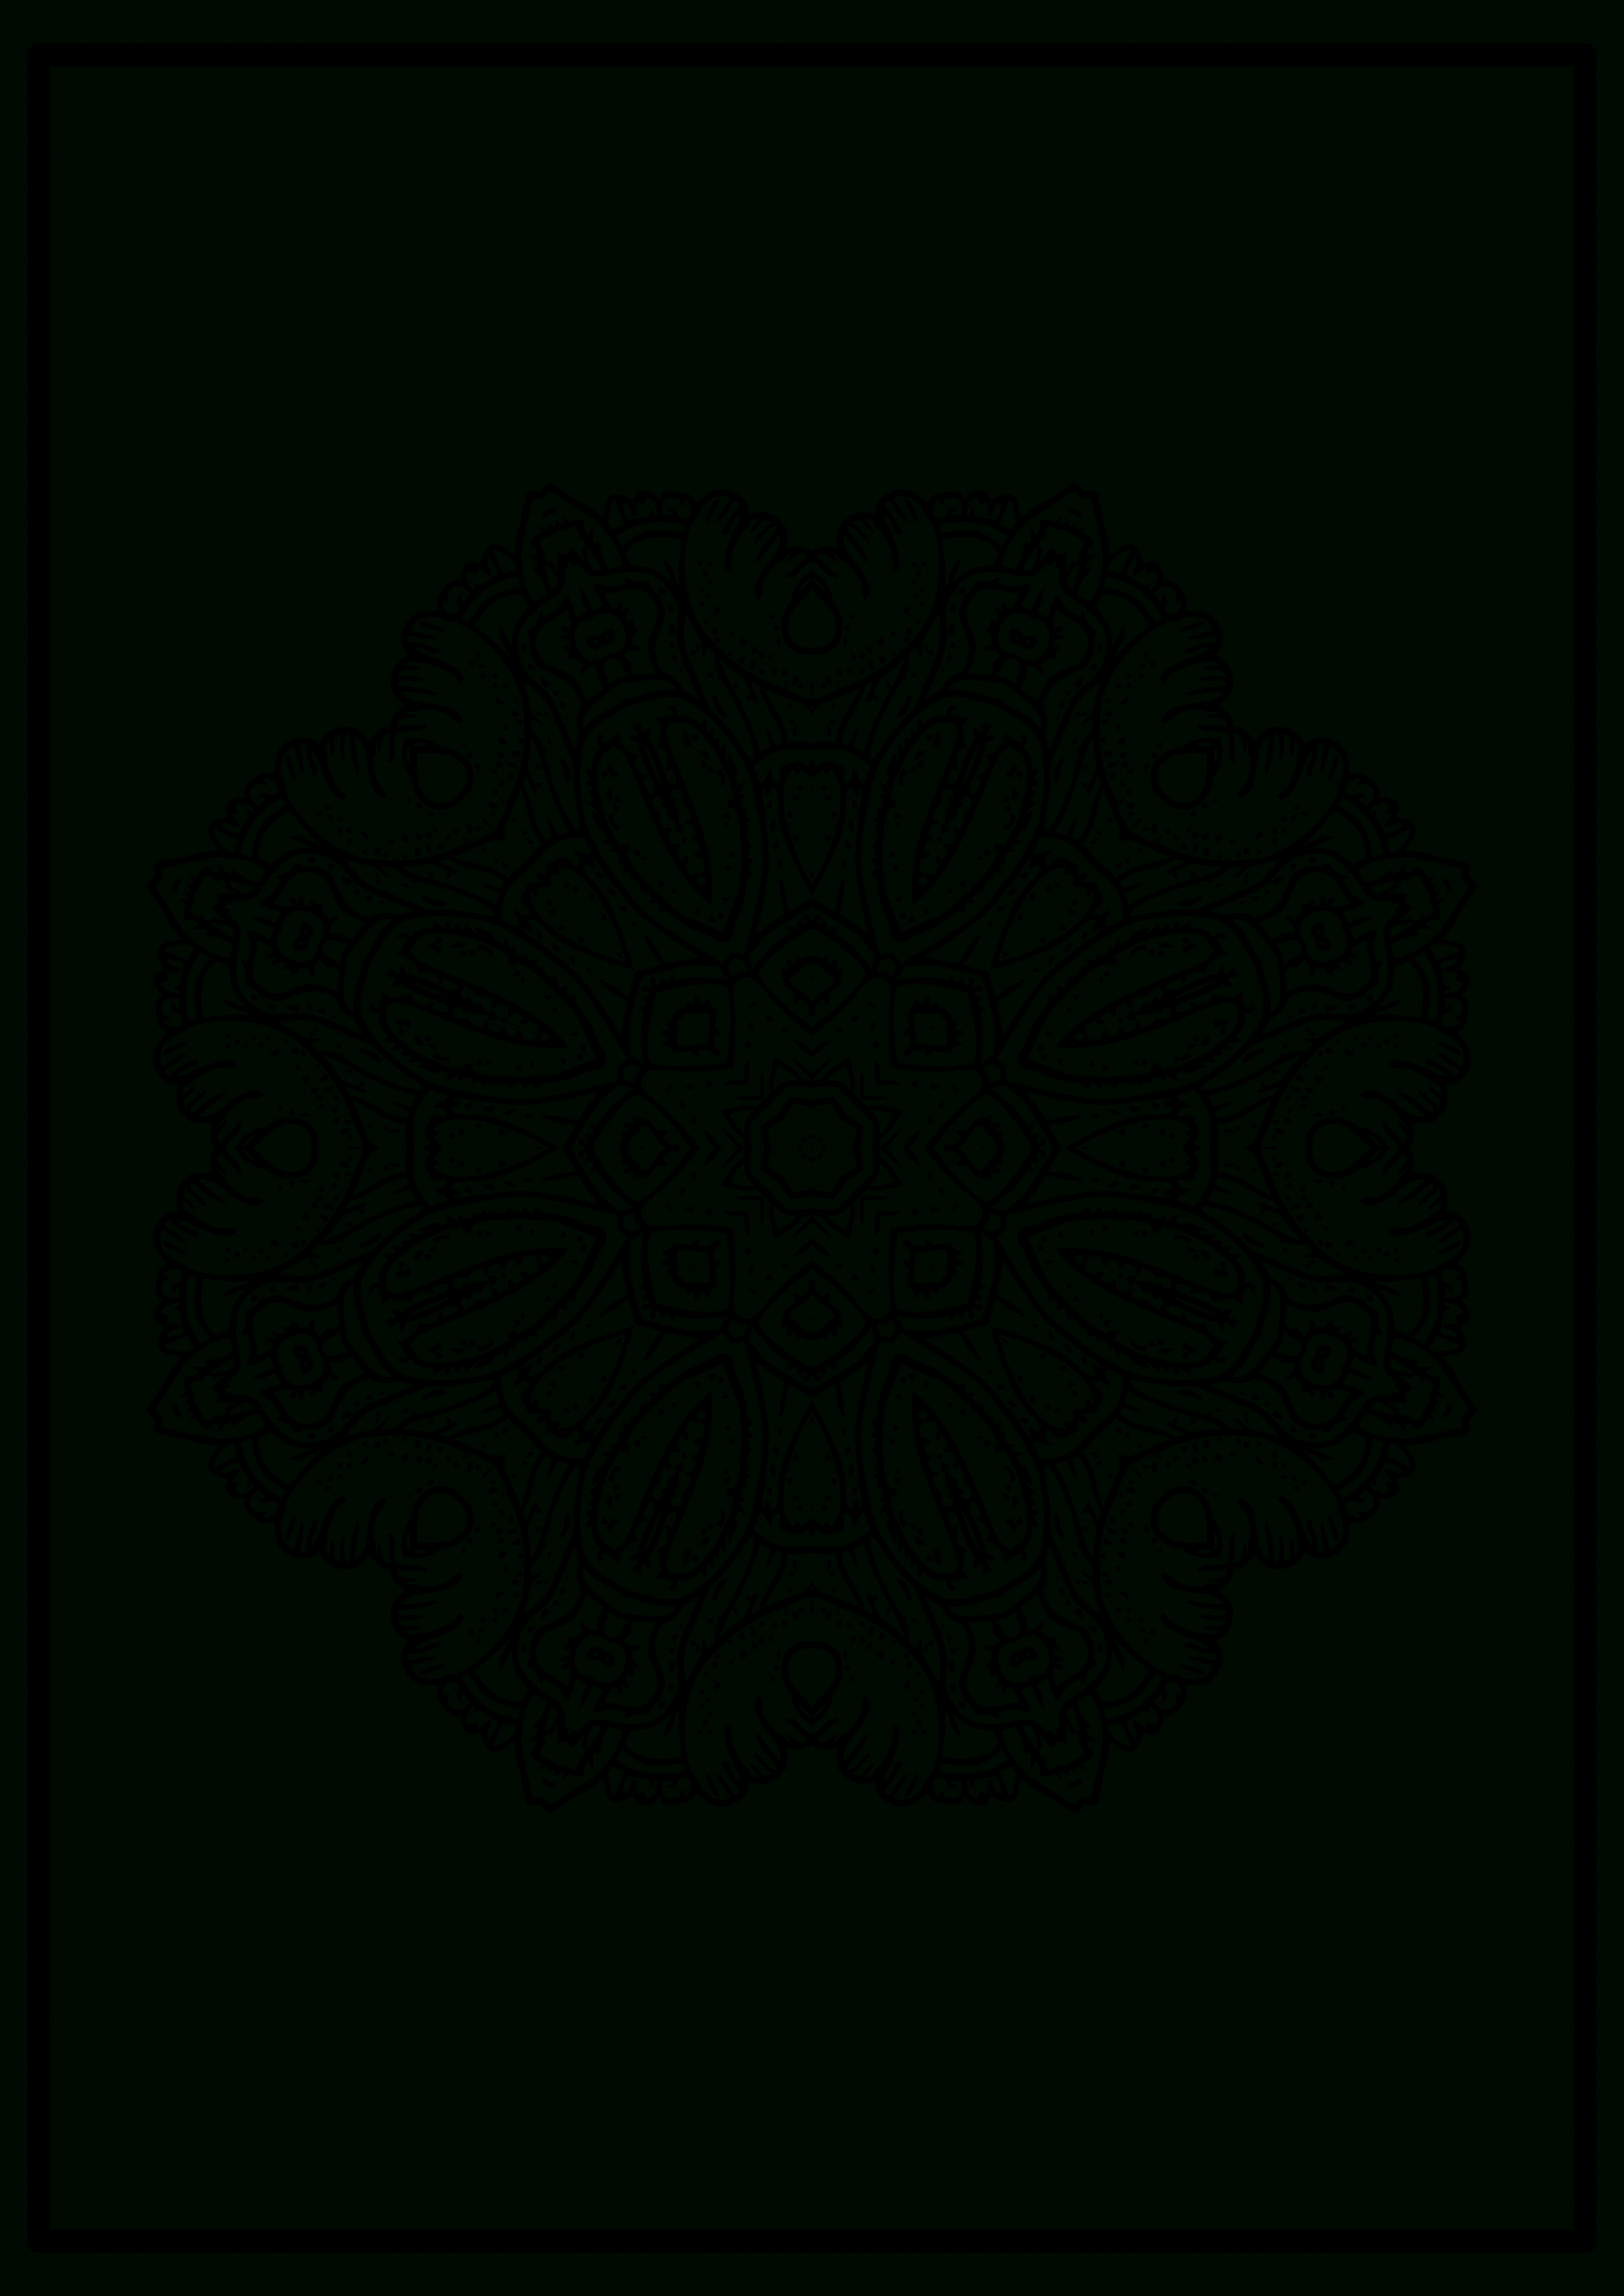 Another Free Easy Mandala Picture To Color | By Inkmandala intérieur Mandala Fée